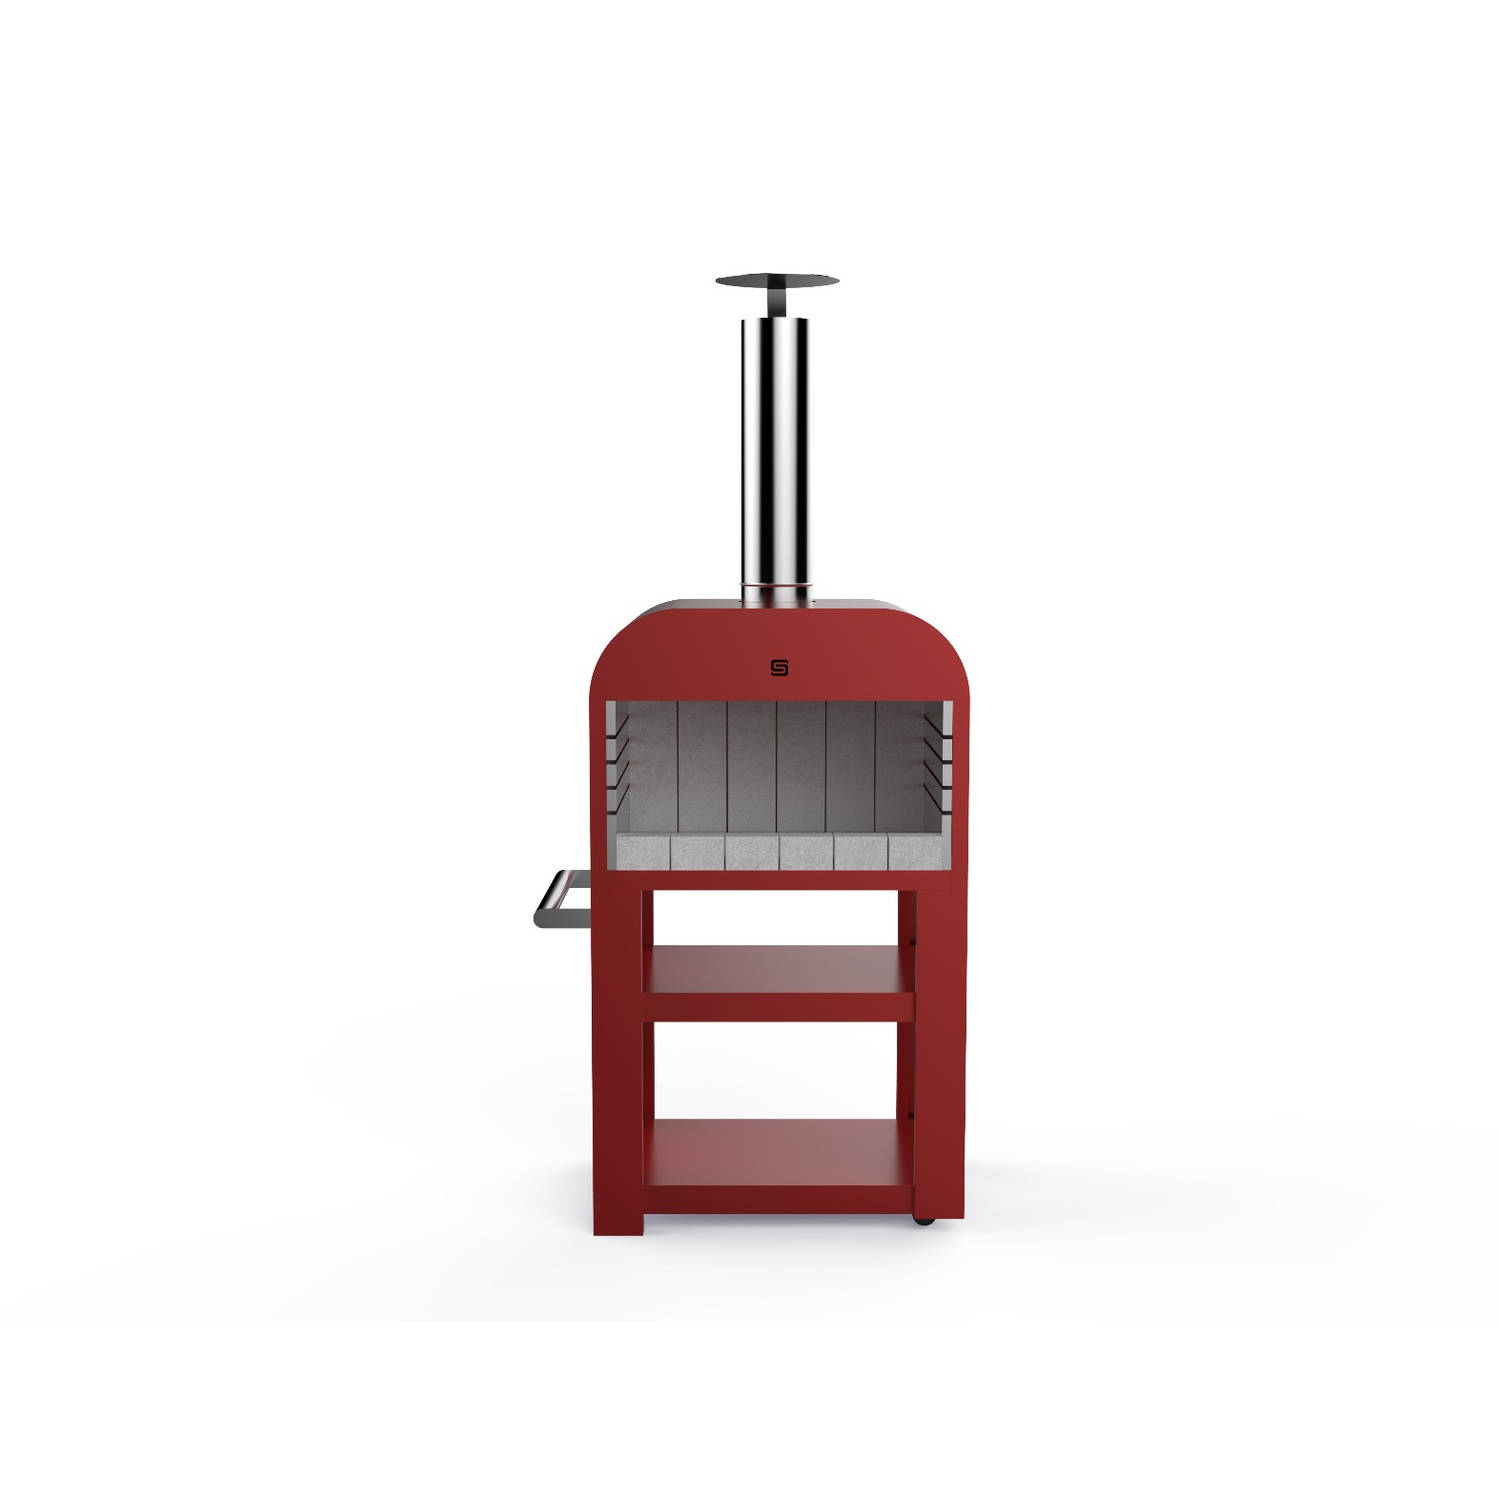 Sarom Fuoco - Iron Large - Barbecue - Houtskool & Hout - Rood